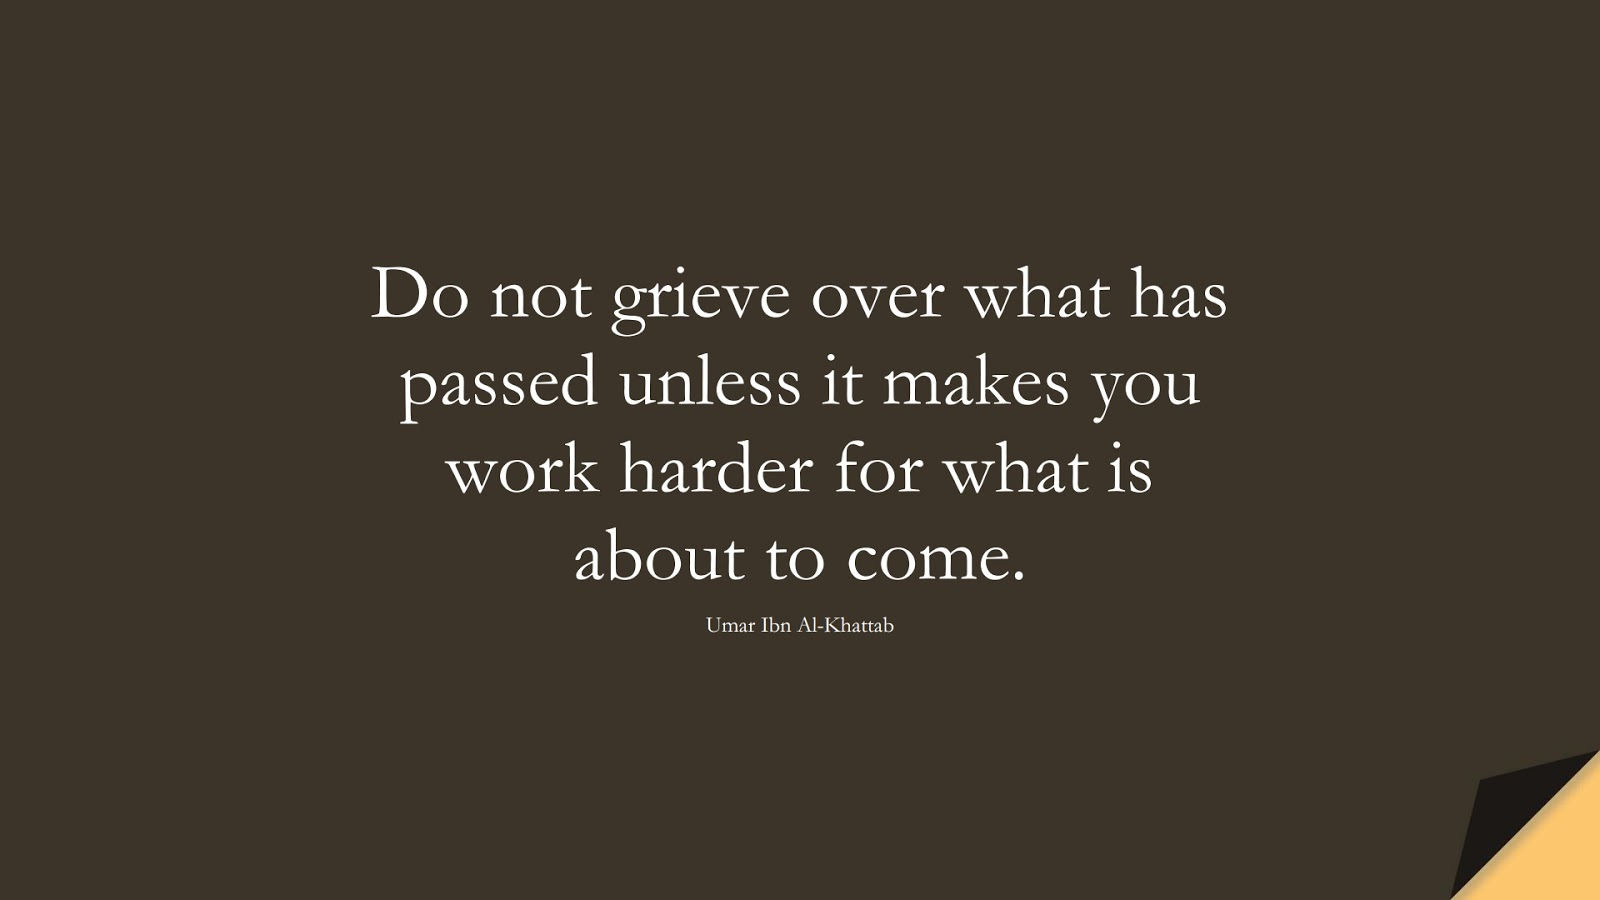 Do not grieve over what has passed unless it makes you work harder for what is about to come. (Umar Ibn Al-Khattab);  #UmarQuotes